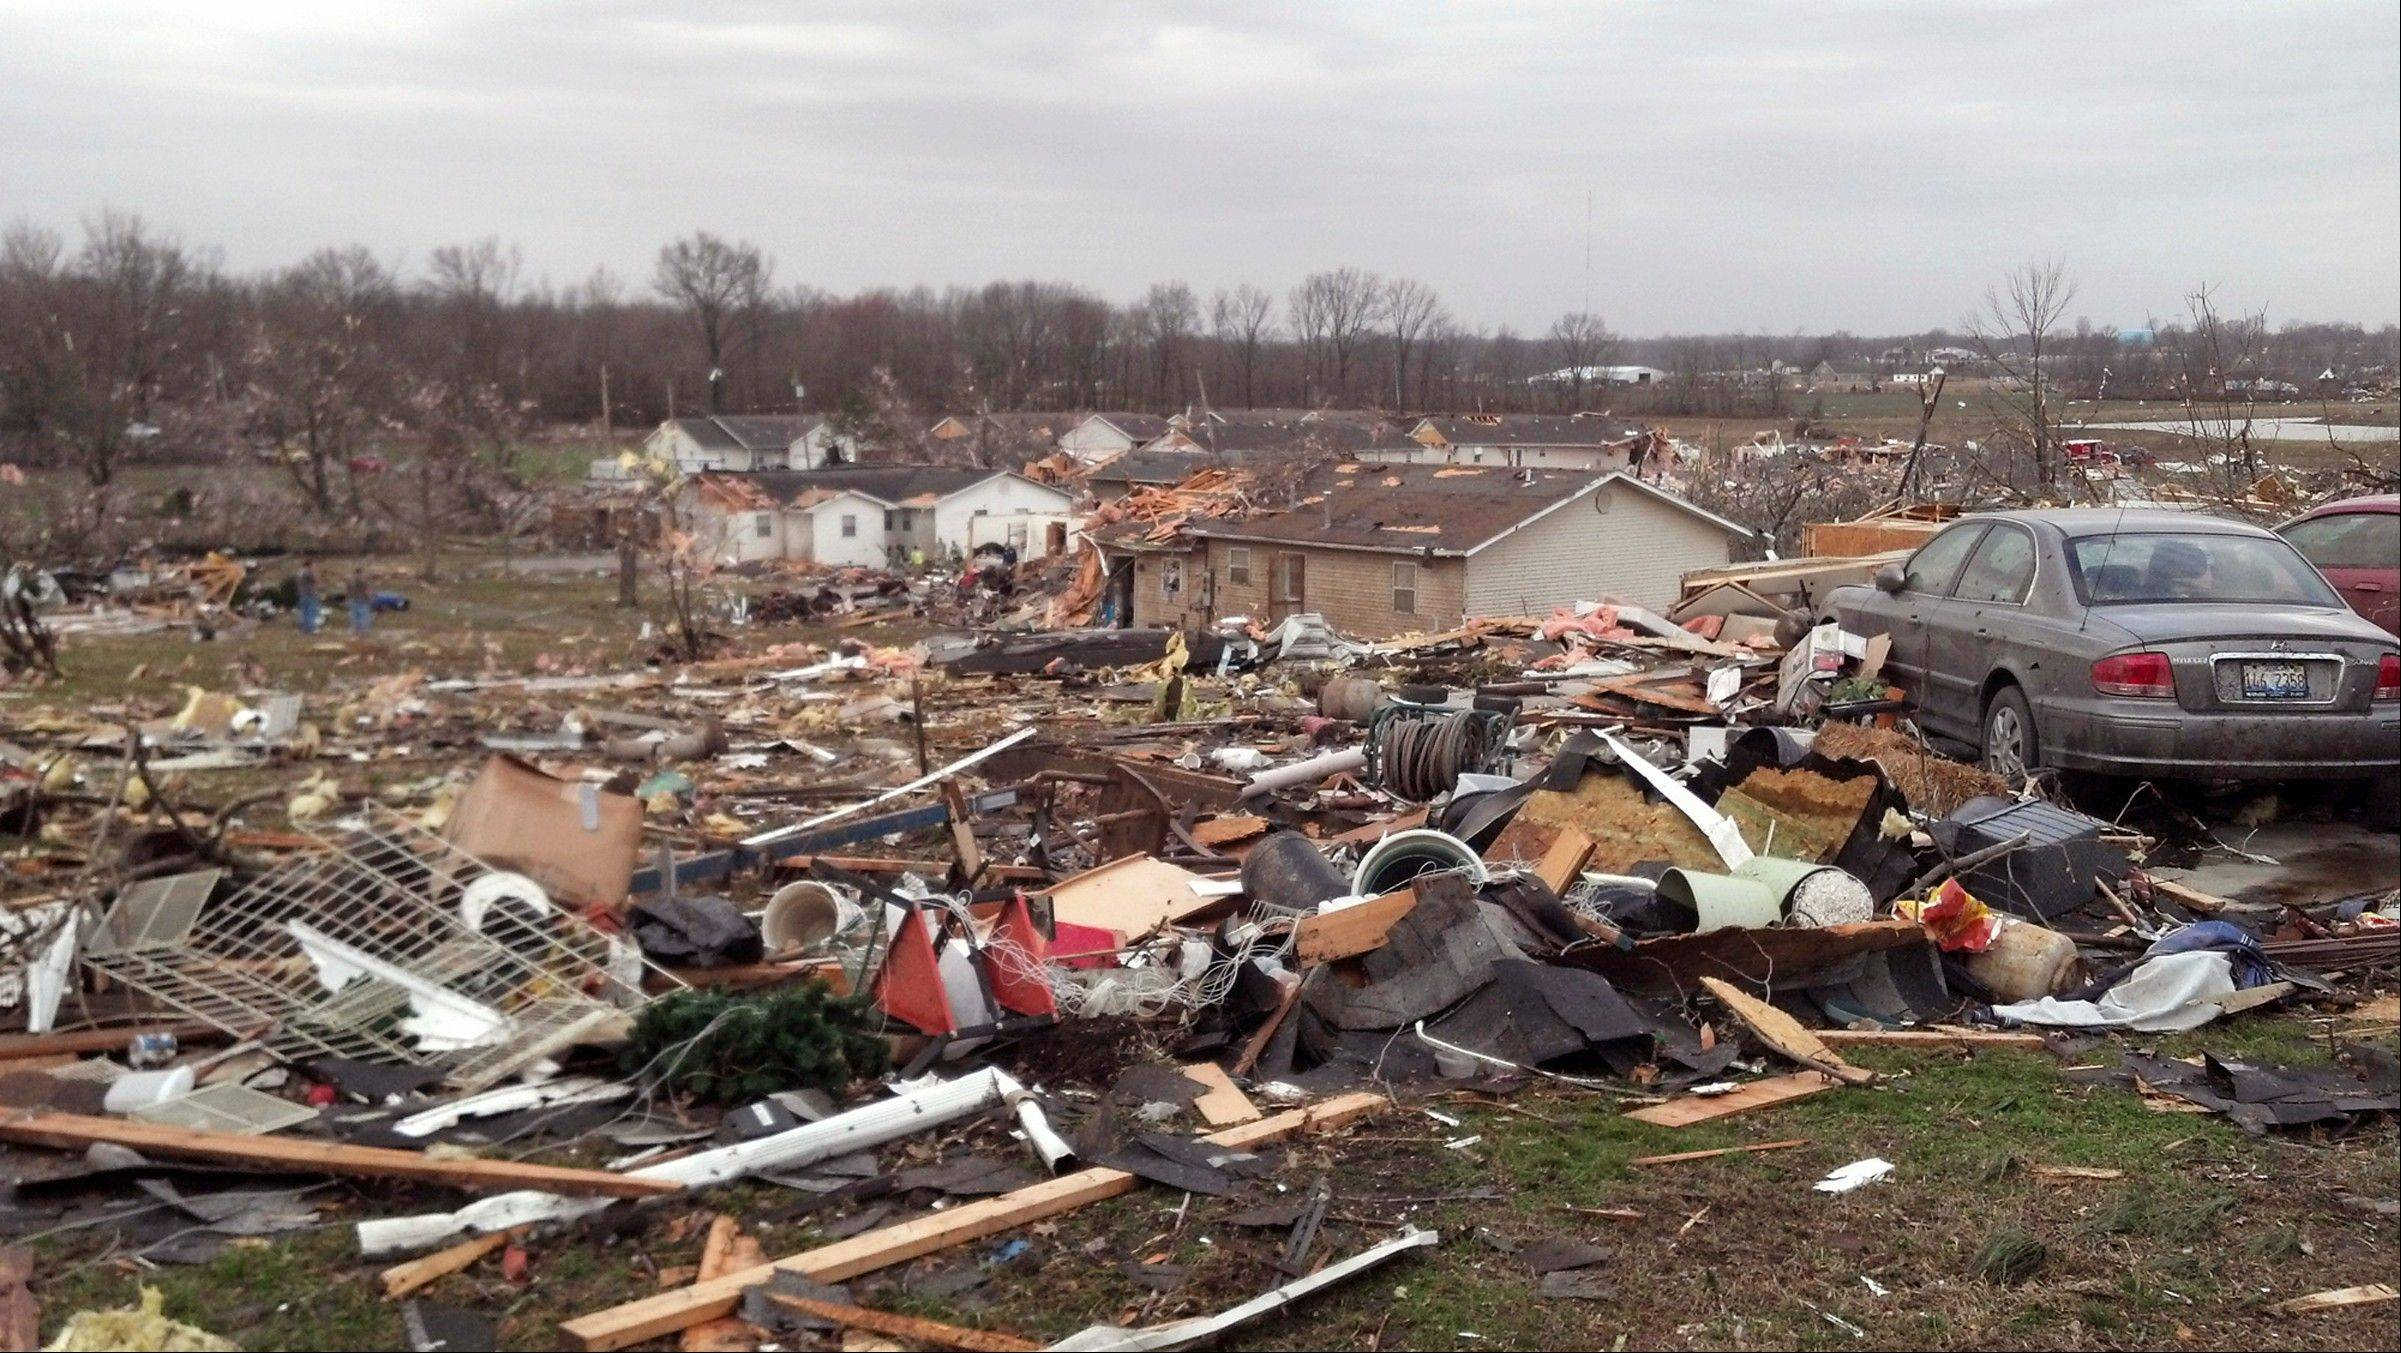 In this image made with a cellphone, a residential area is heavily damaged in Harrisburg, Ill., after a severe storm swept through the area early Wednesday morning